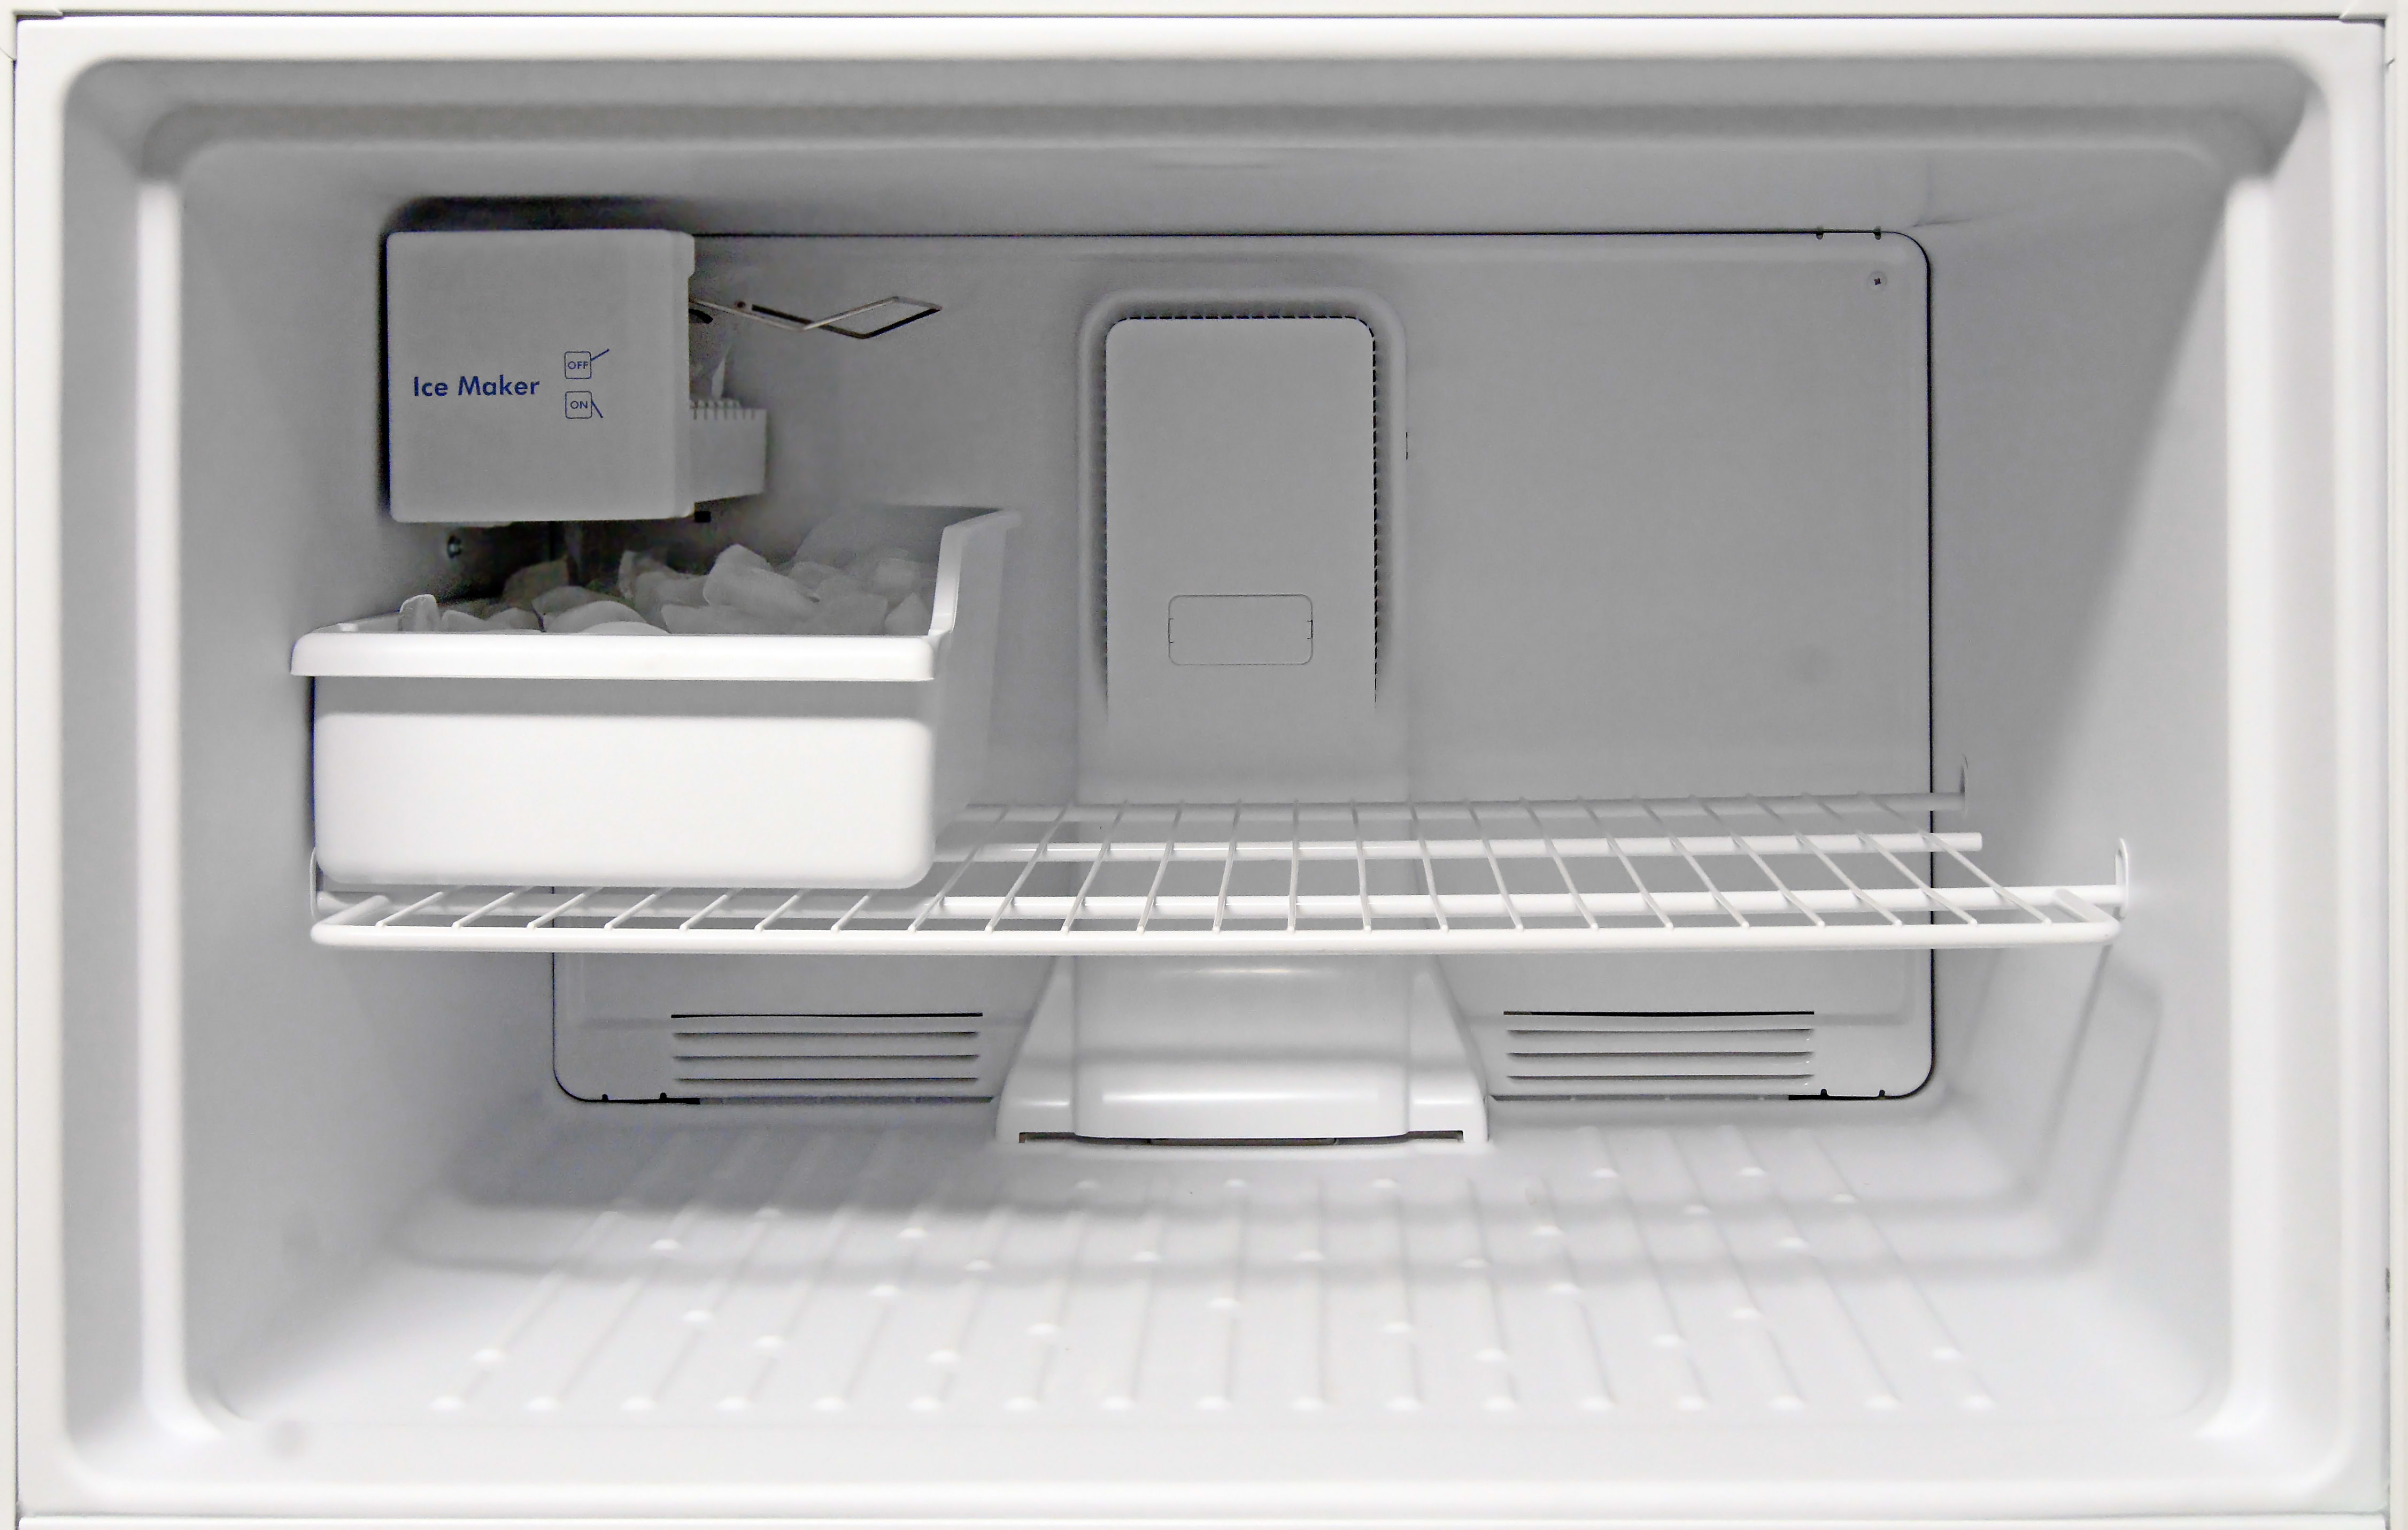 The Kenmore 72152's wide freezer is plenty spacious, though the wire shelf isn't adjustable.